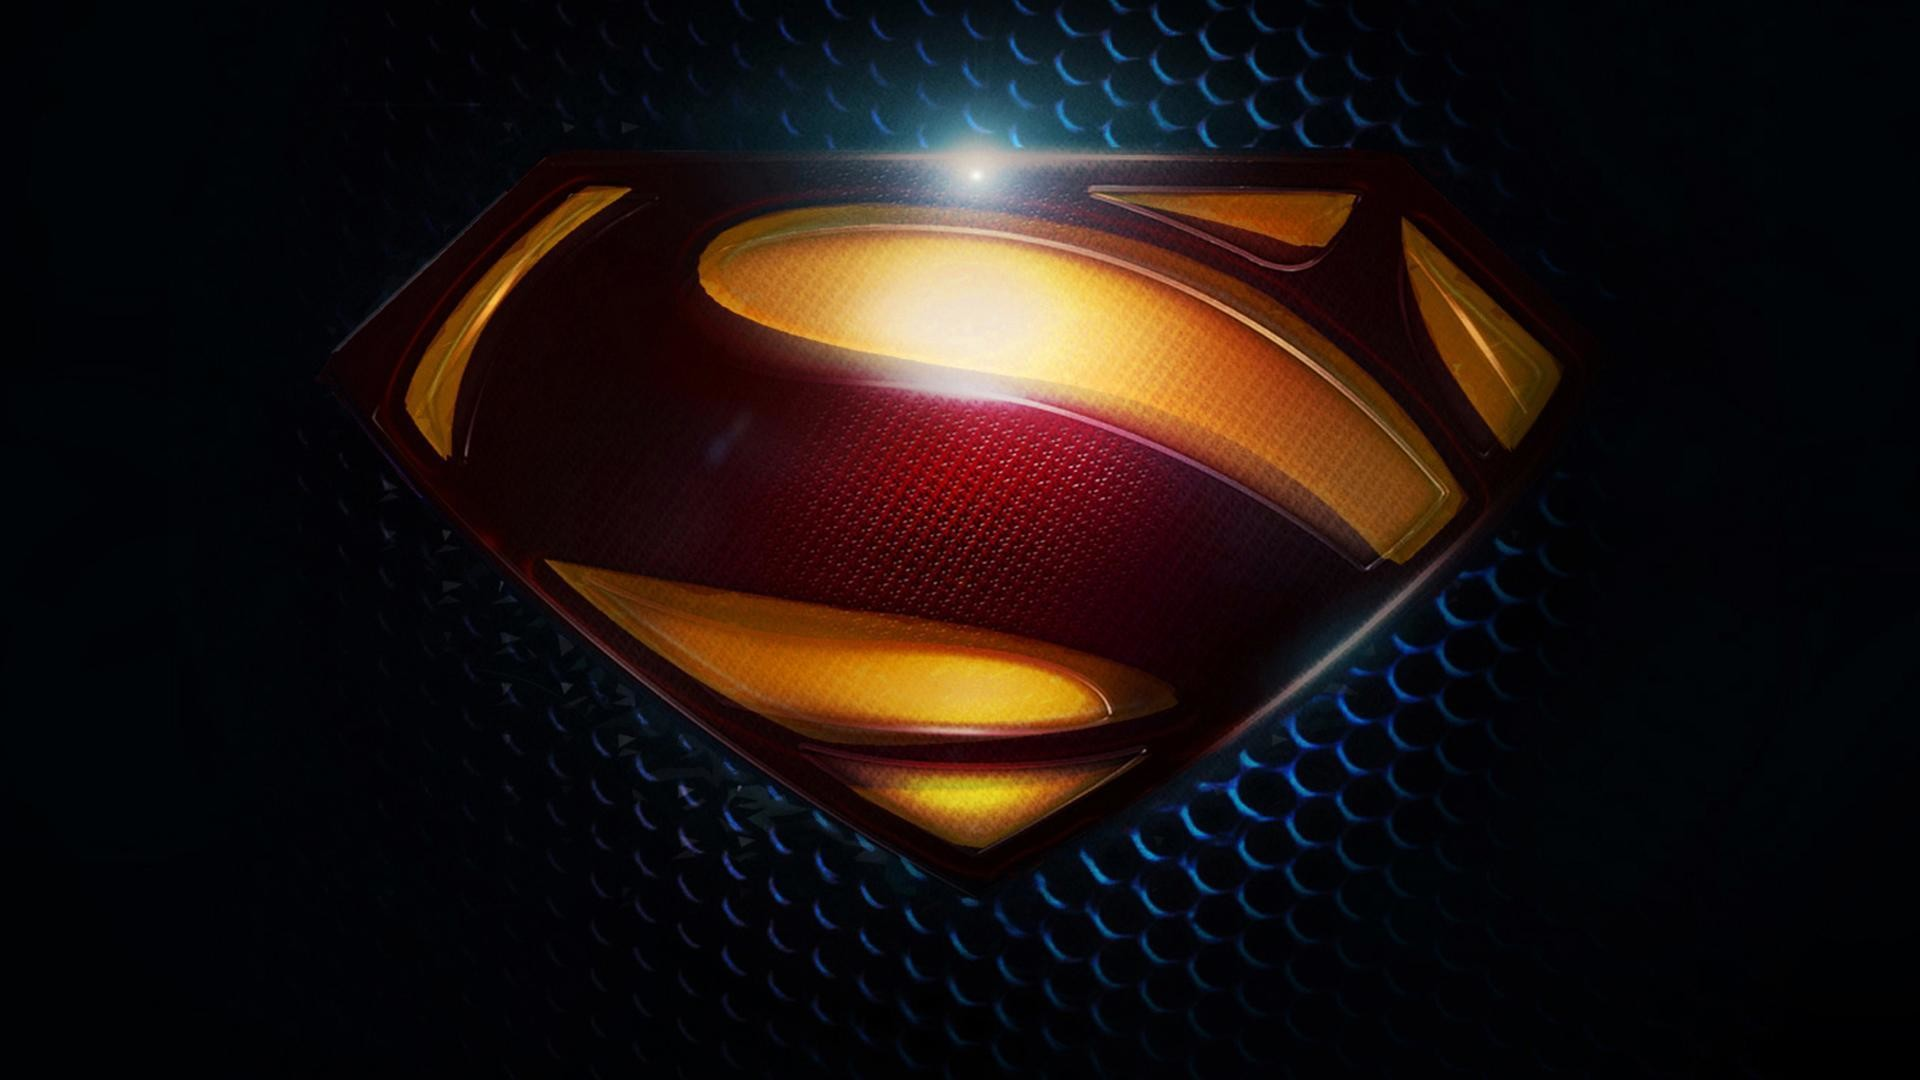 1920x1080 Wallpapers For > Superman Man Of Steel Wallpaper Hd